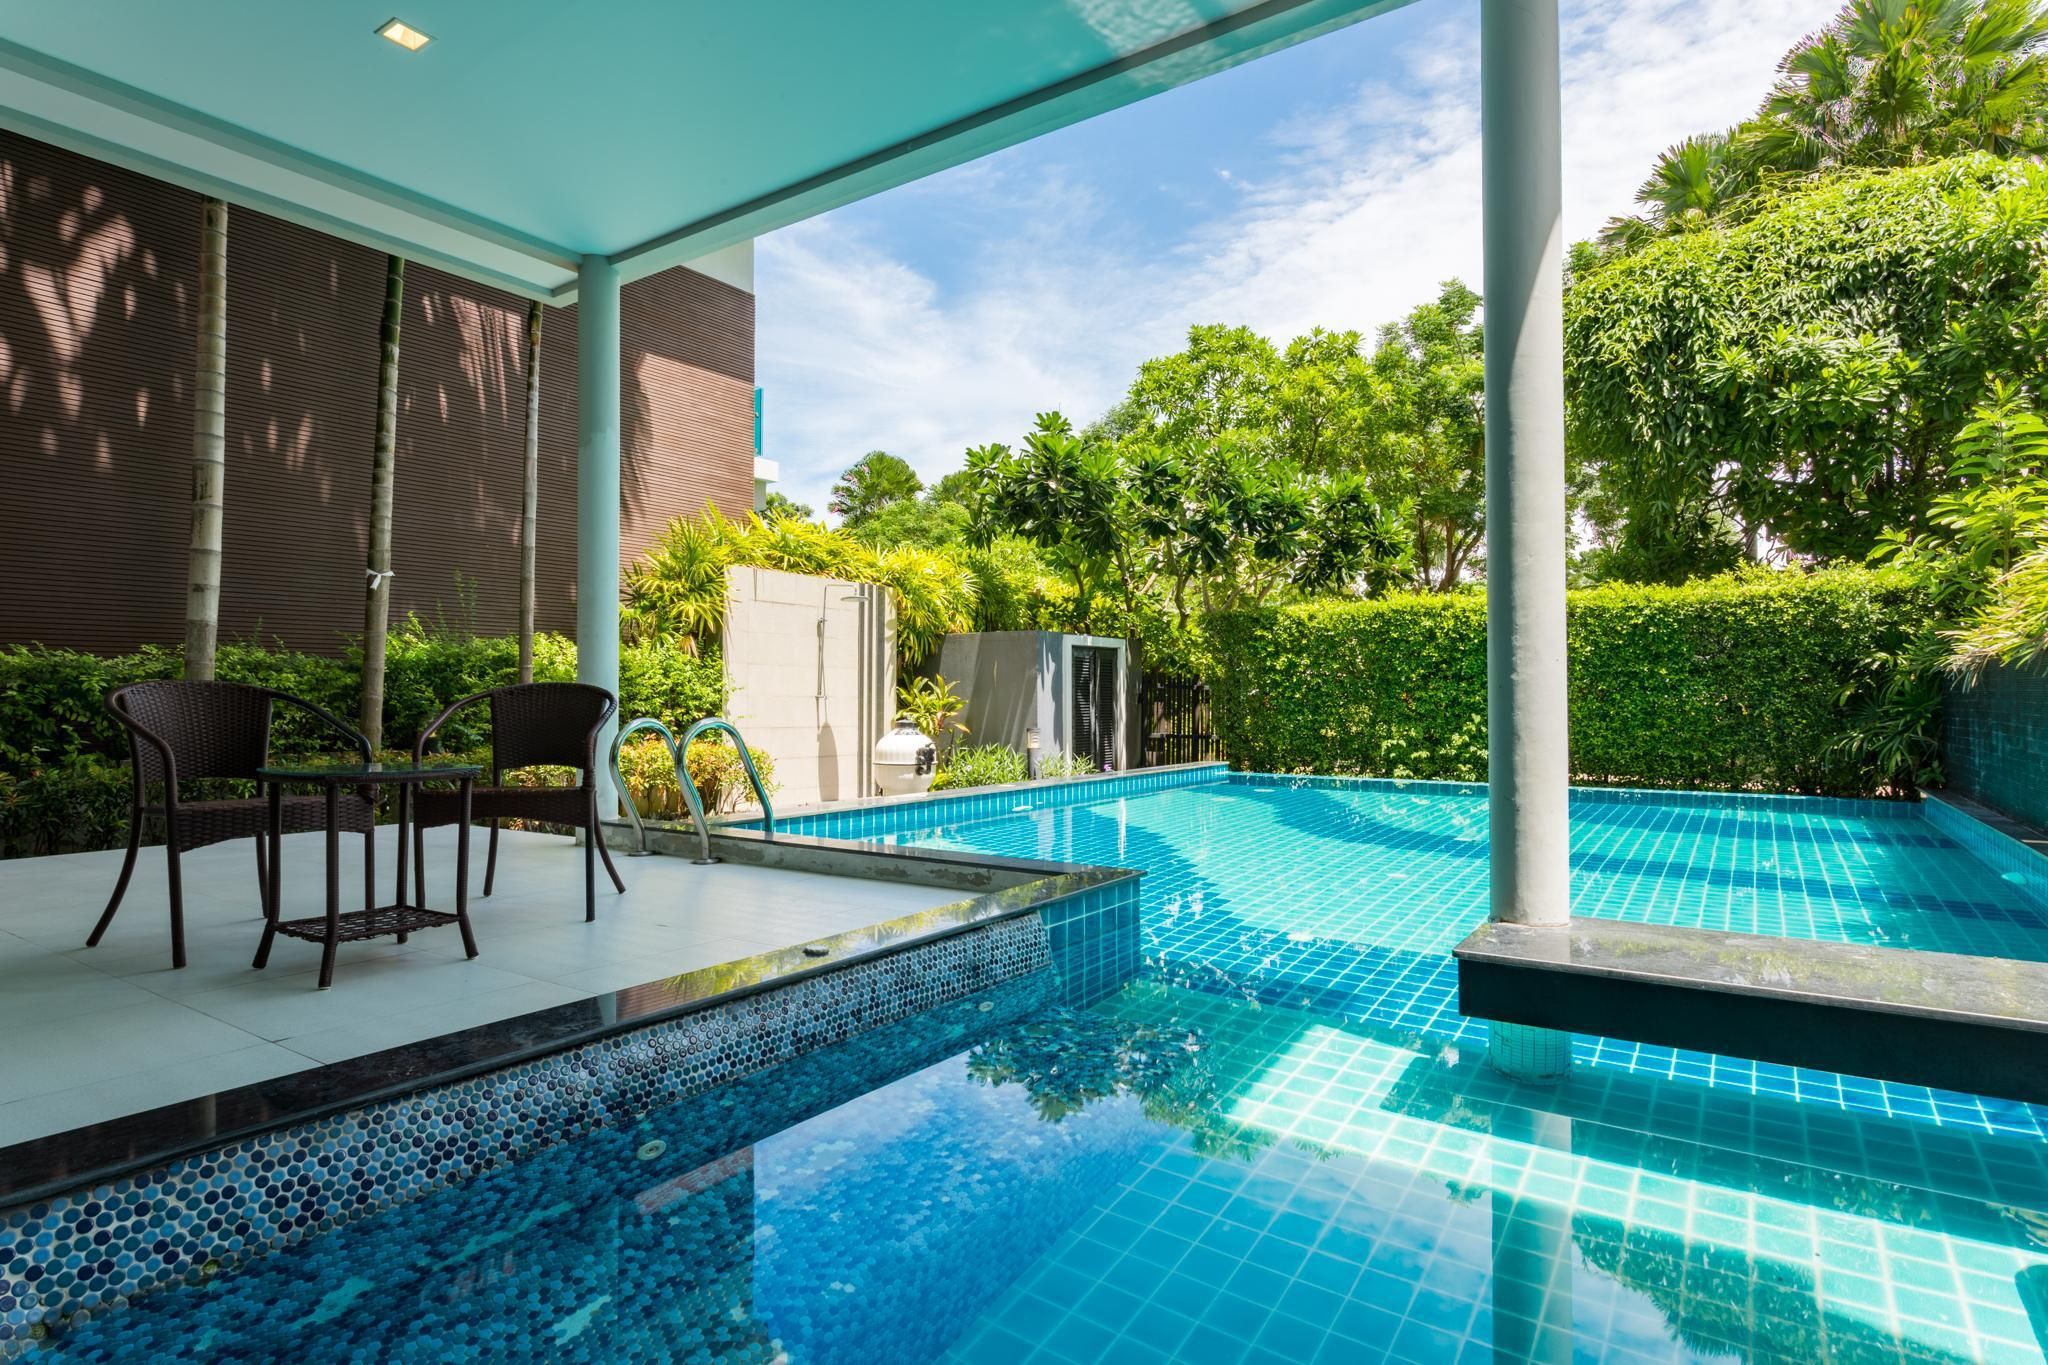 Luxury Private Pool Villa at Bang Saen, Chonburi Luxury Private Pool Villa at Bang Saen, Chonburi